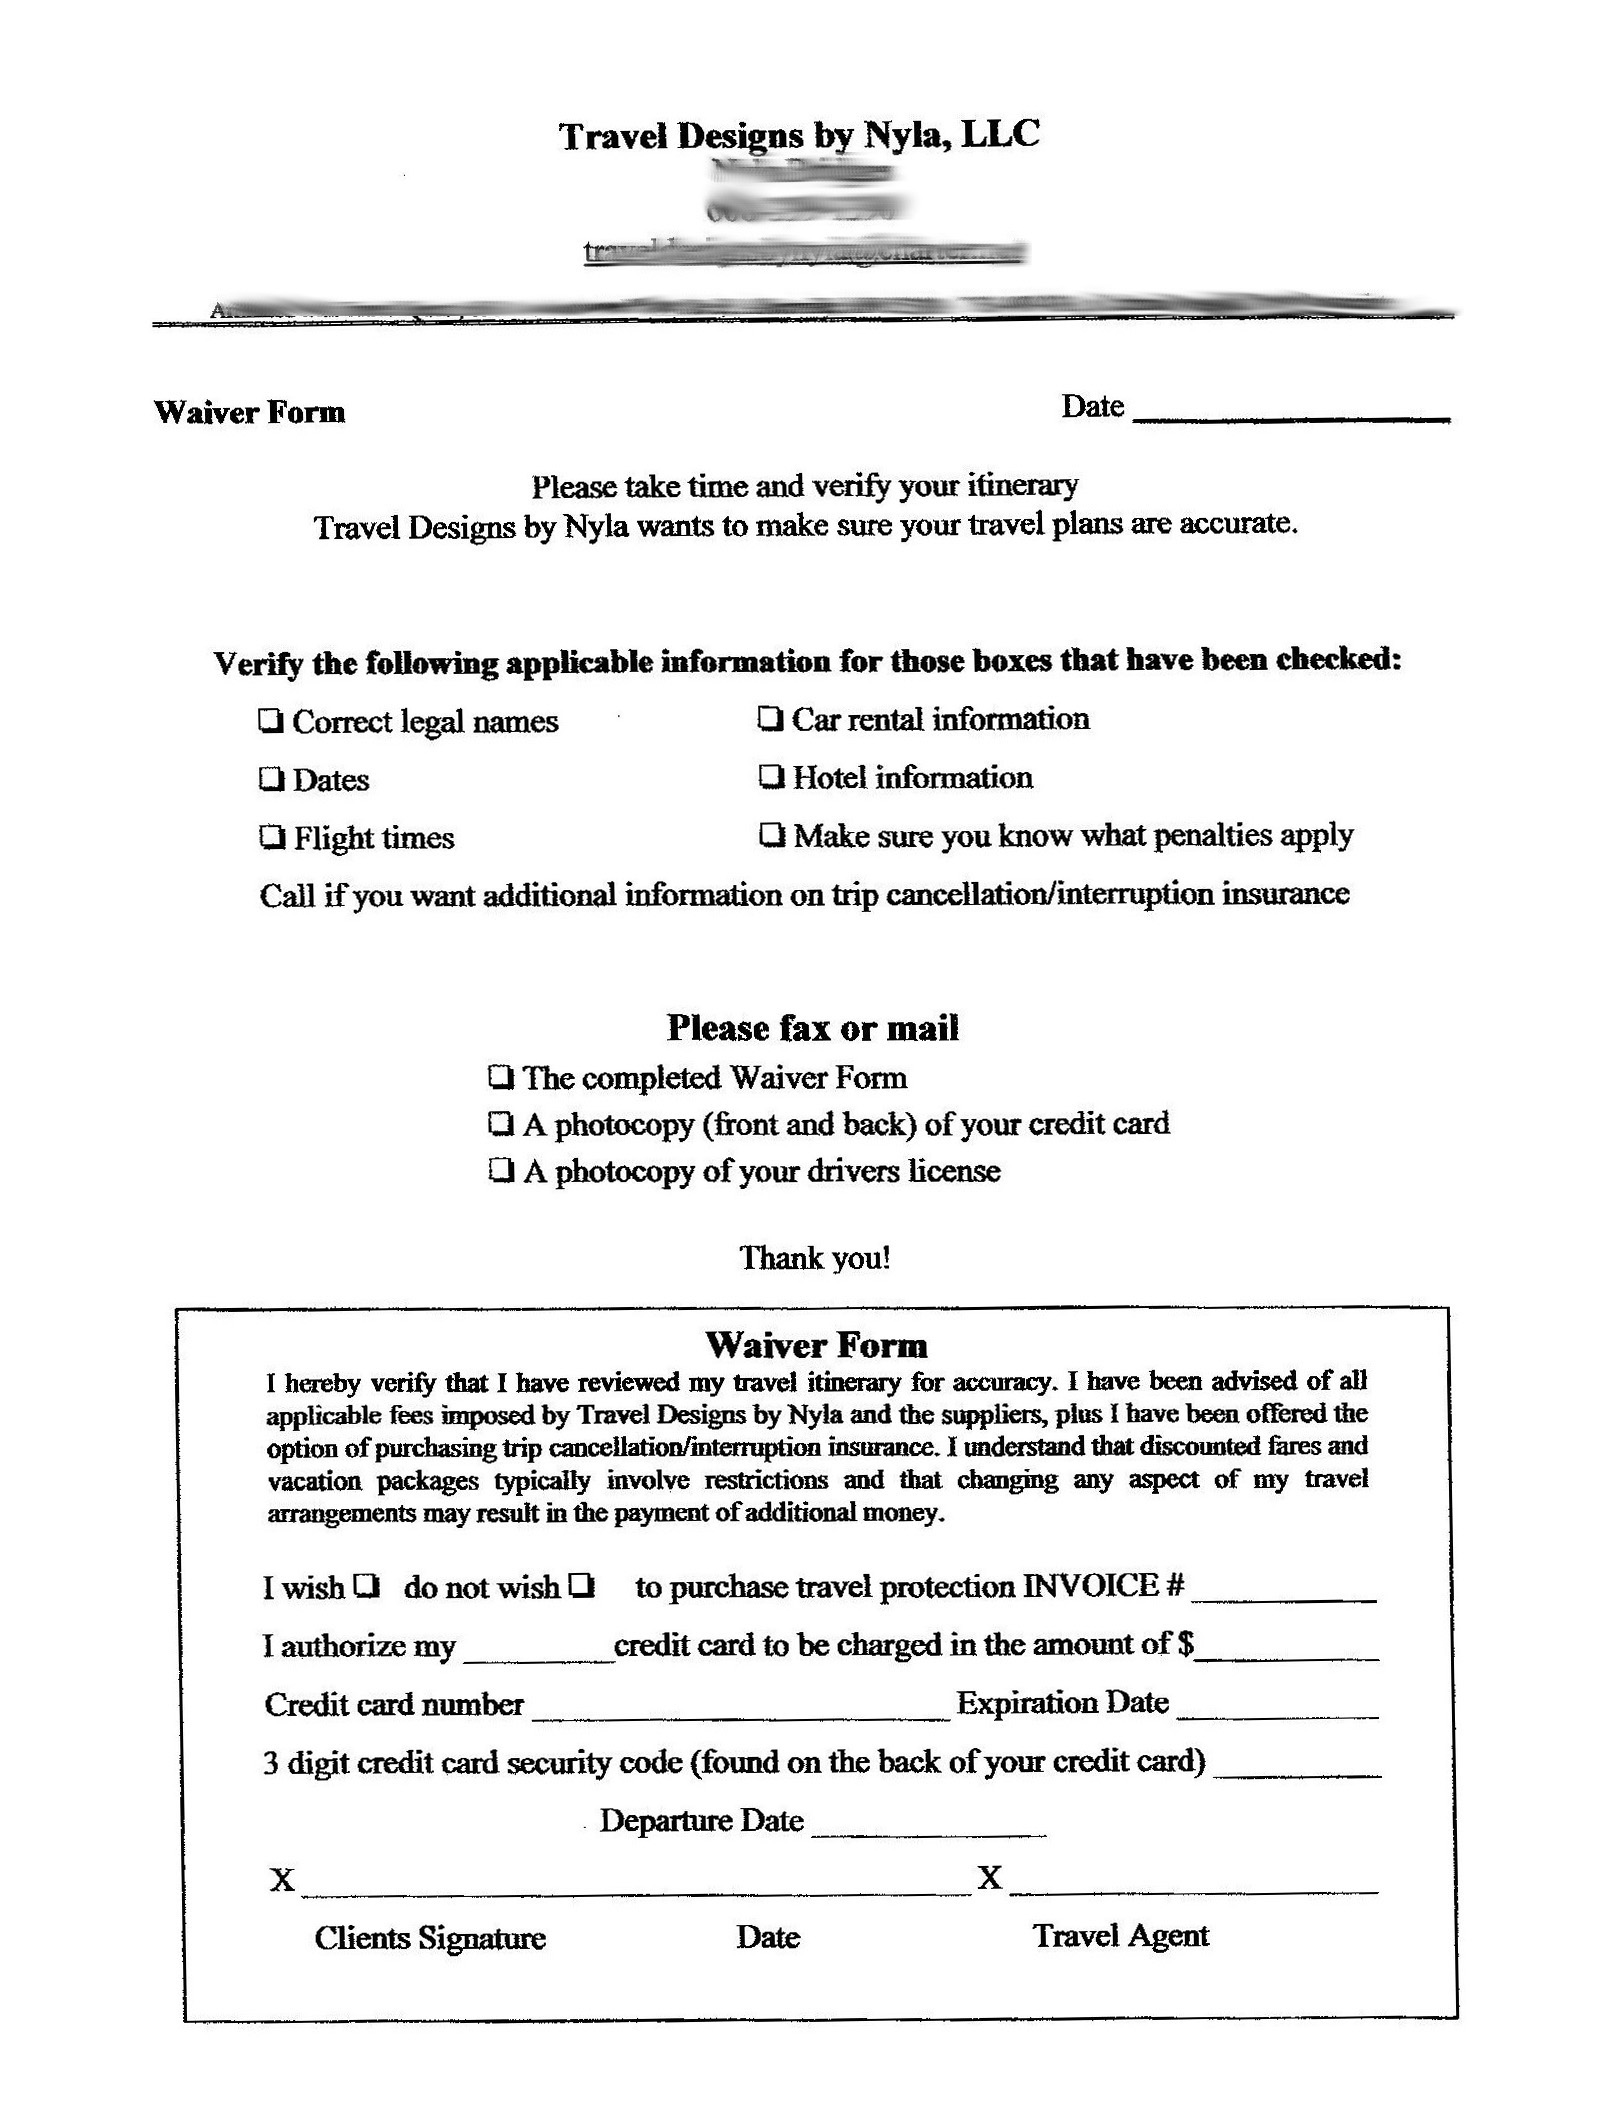 Online Travel Waiver Form